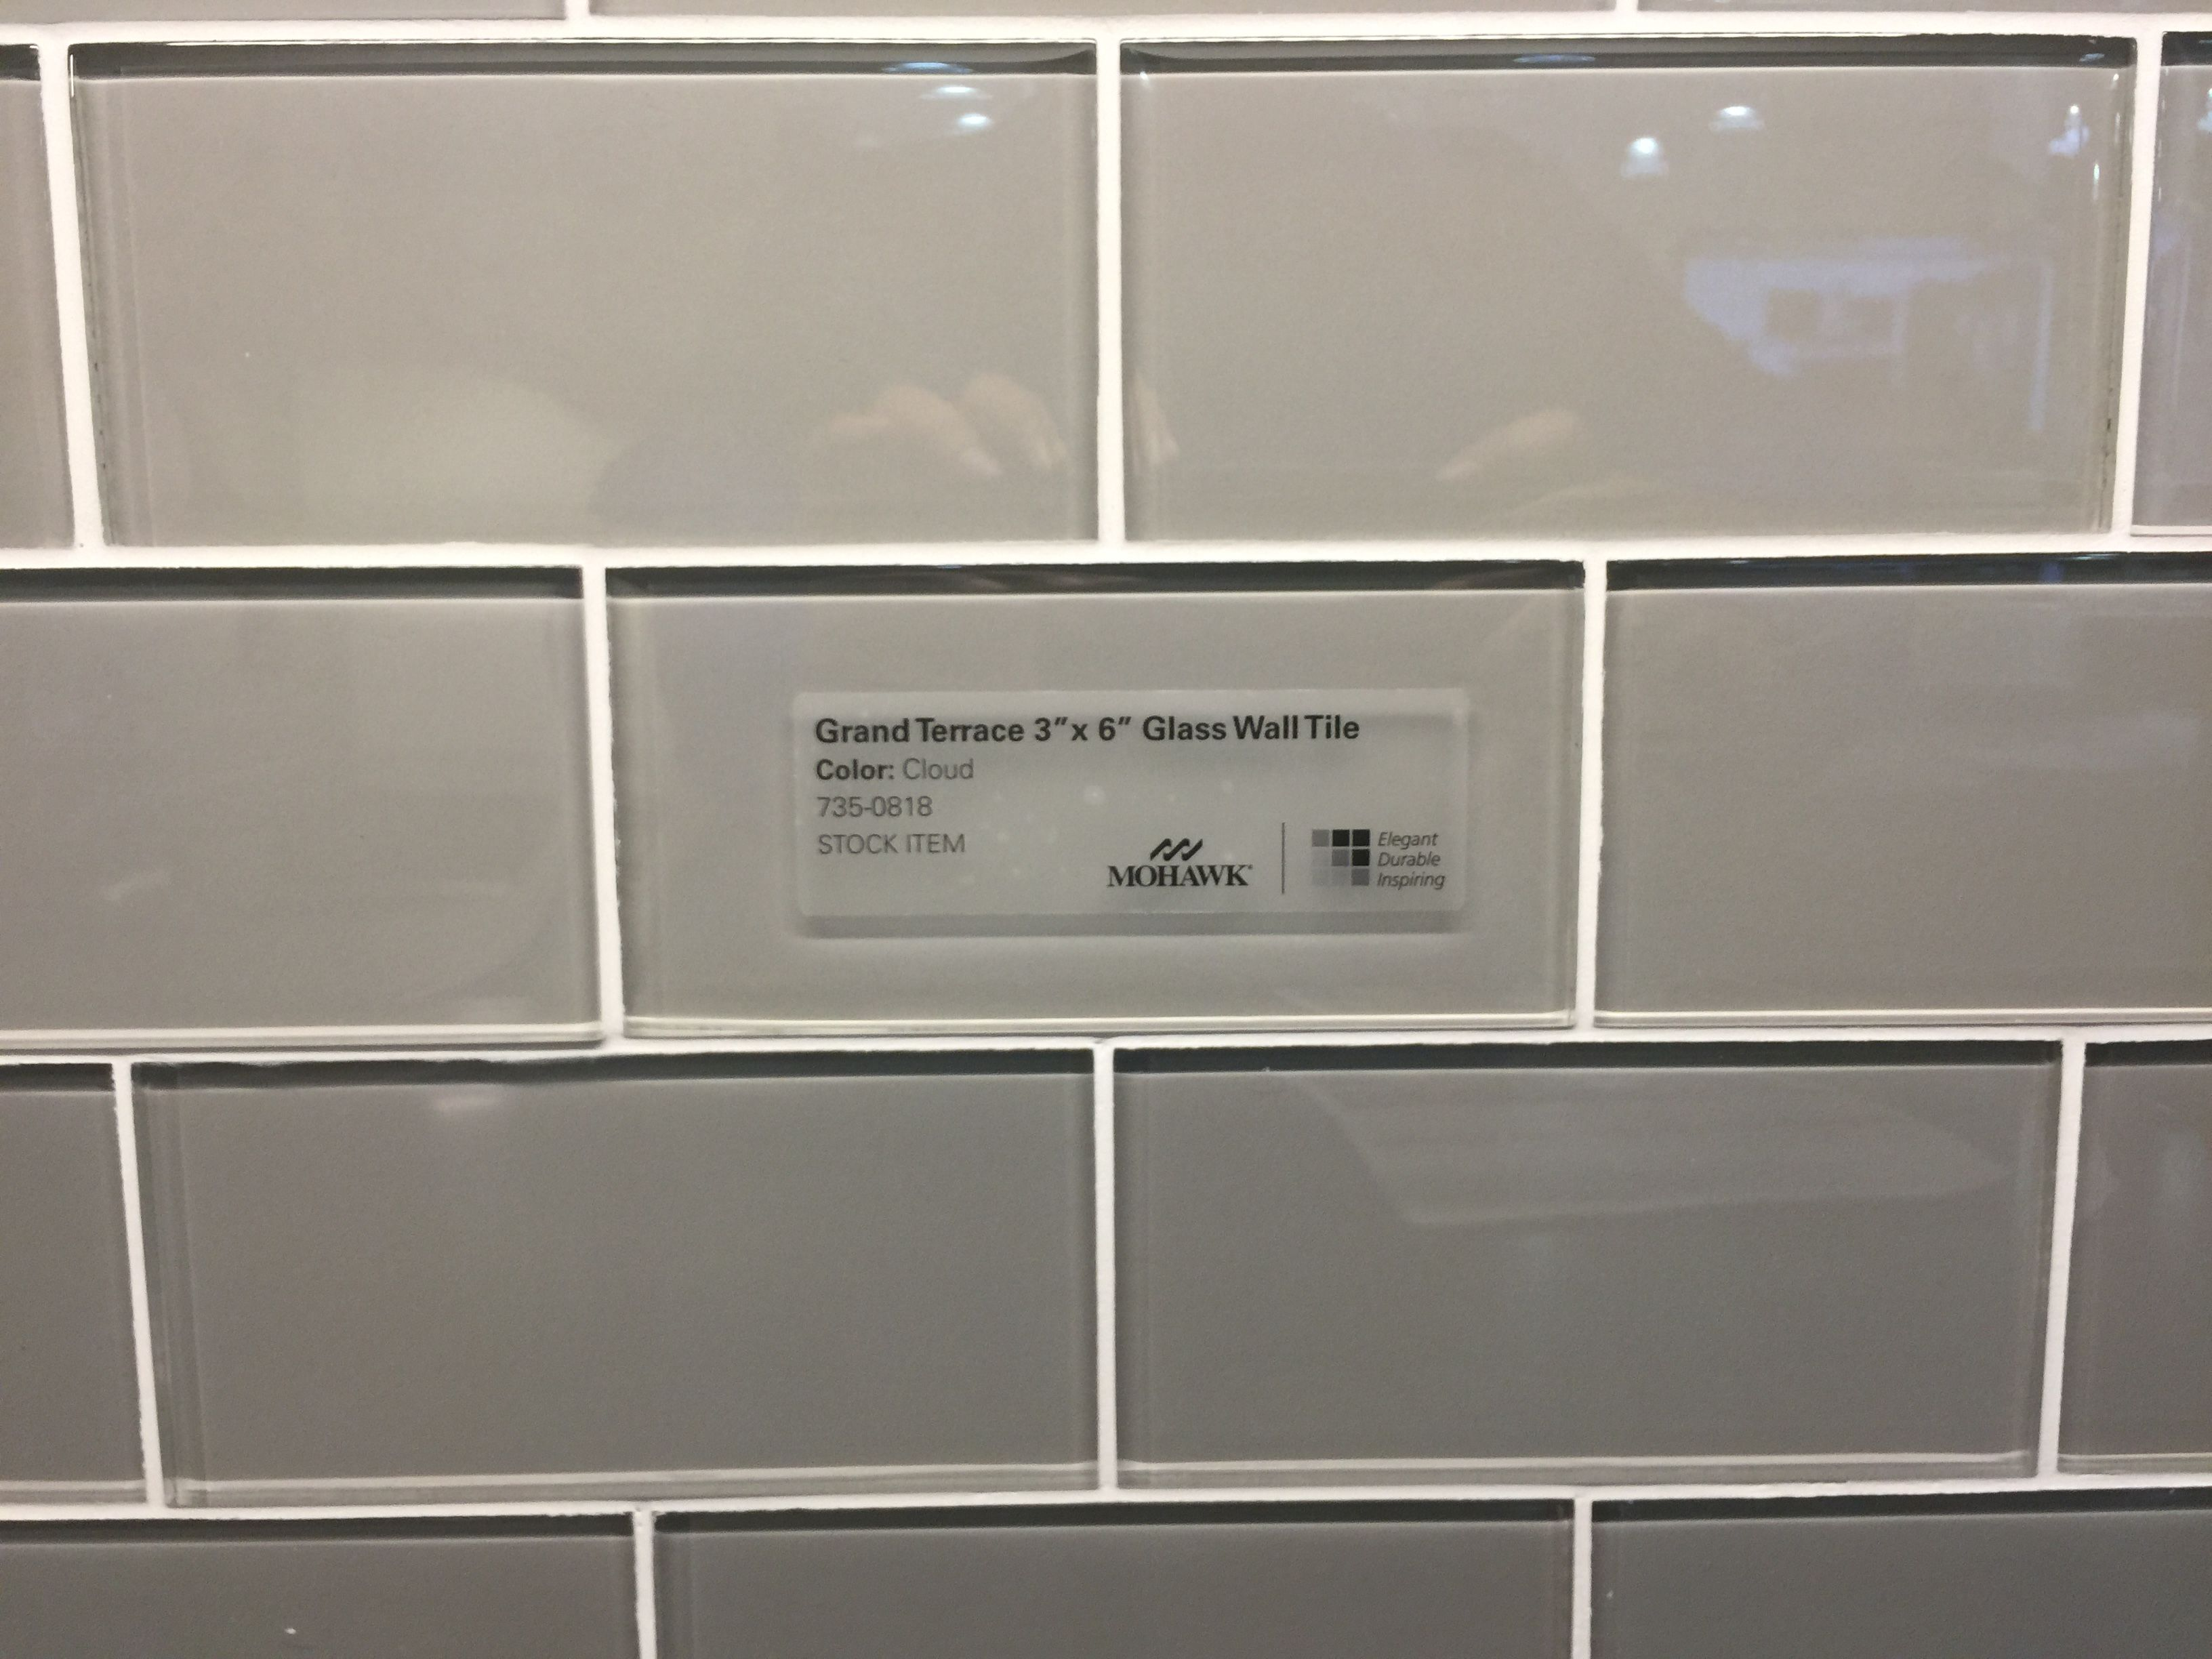 menards kitchen design cheap chairs backsplash tile i love from for first